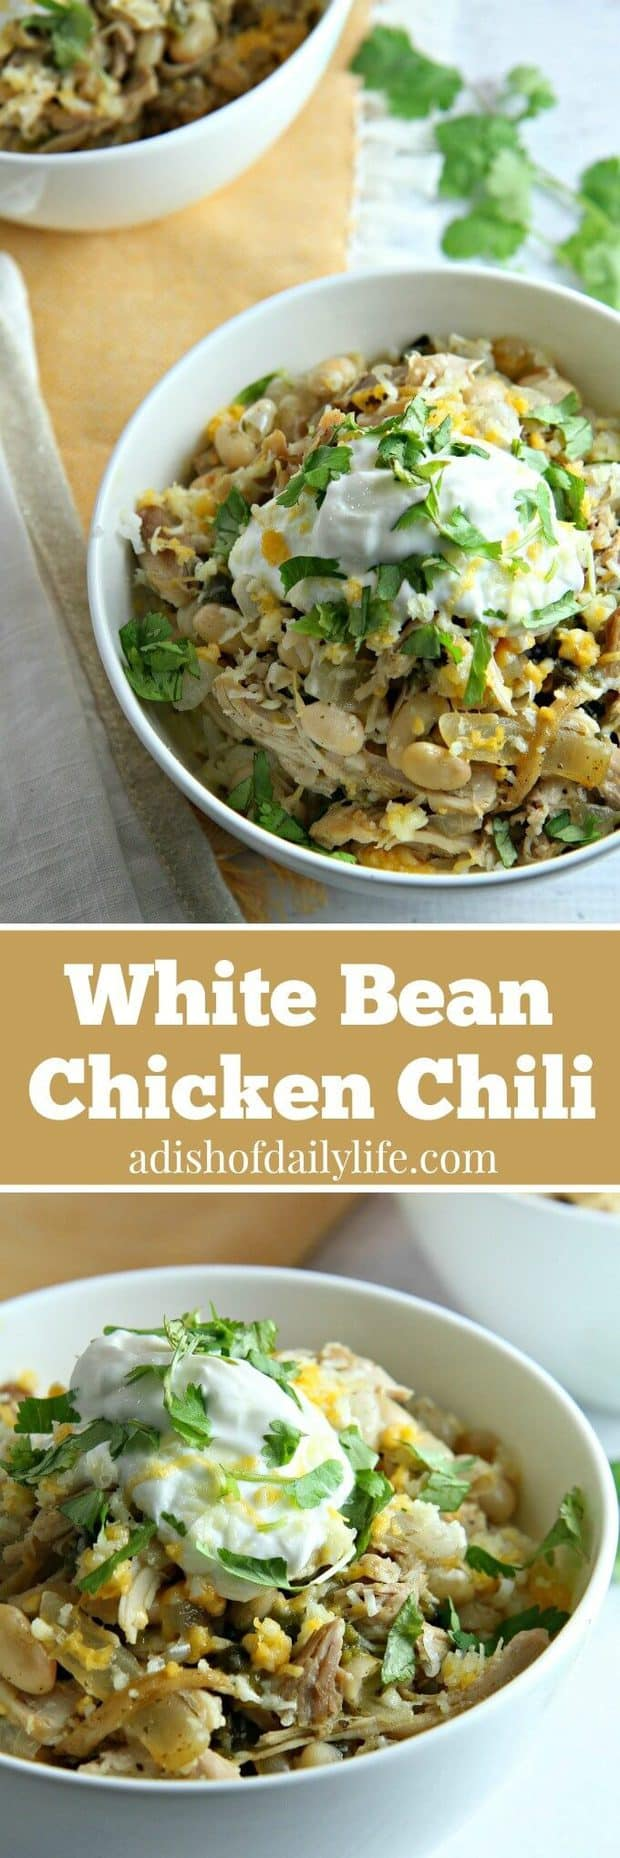 White Bean Chicken Chili is a healthy and delicious easy weeknight ...